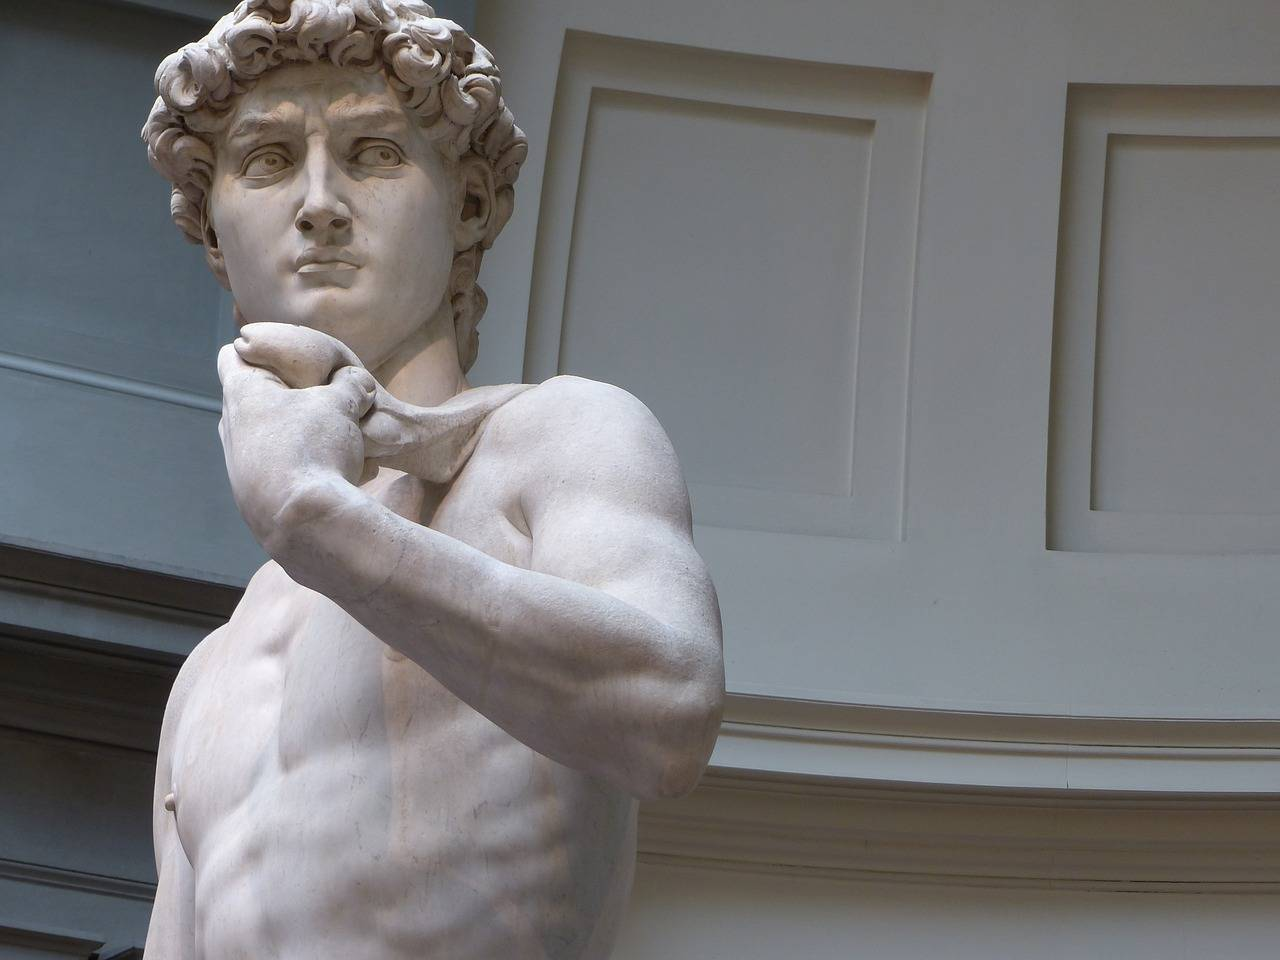 47c6fc5dc2 85th Stopped Pick-Pocket: The Michelangelo's David of Stopped Pick-Pockets  in Florence!